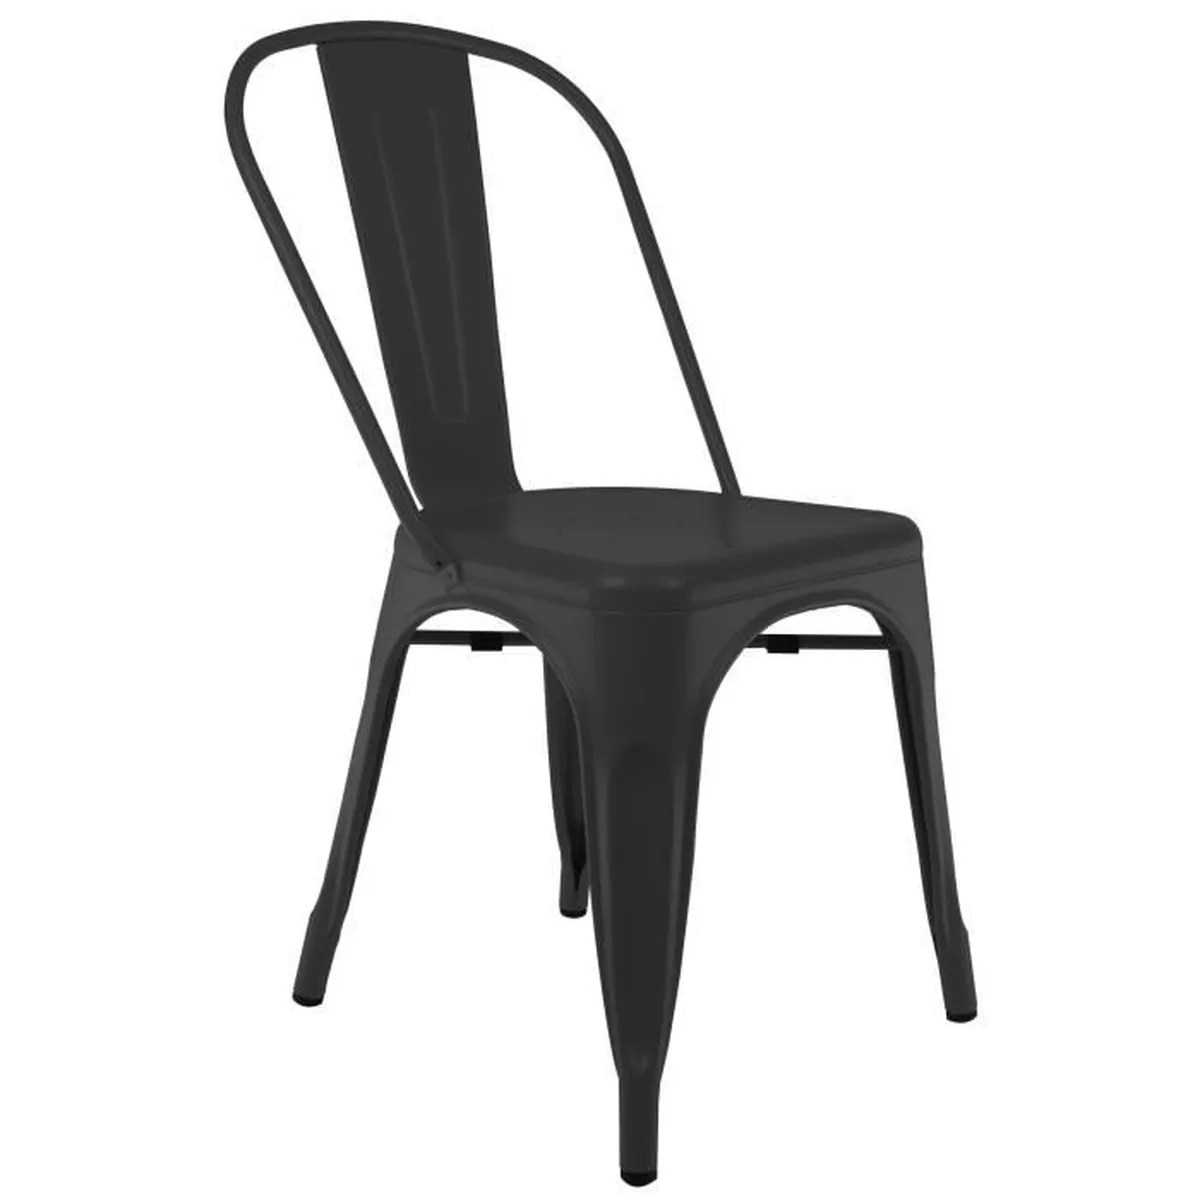 Chaises Privee Chaise Privee Chaise Industrielle Bistro Noir Sans